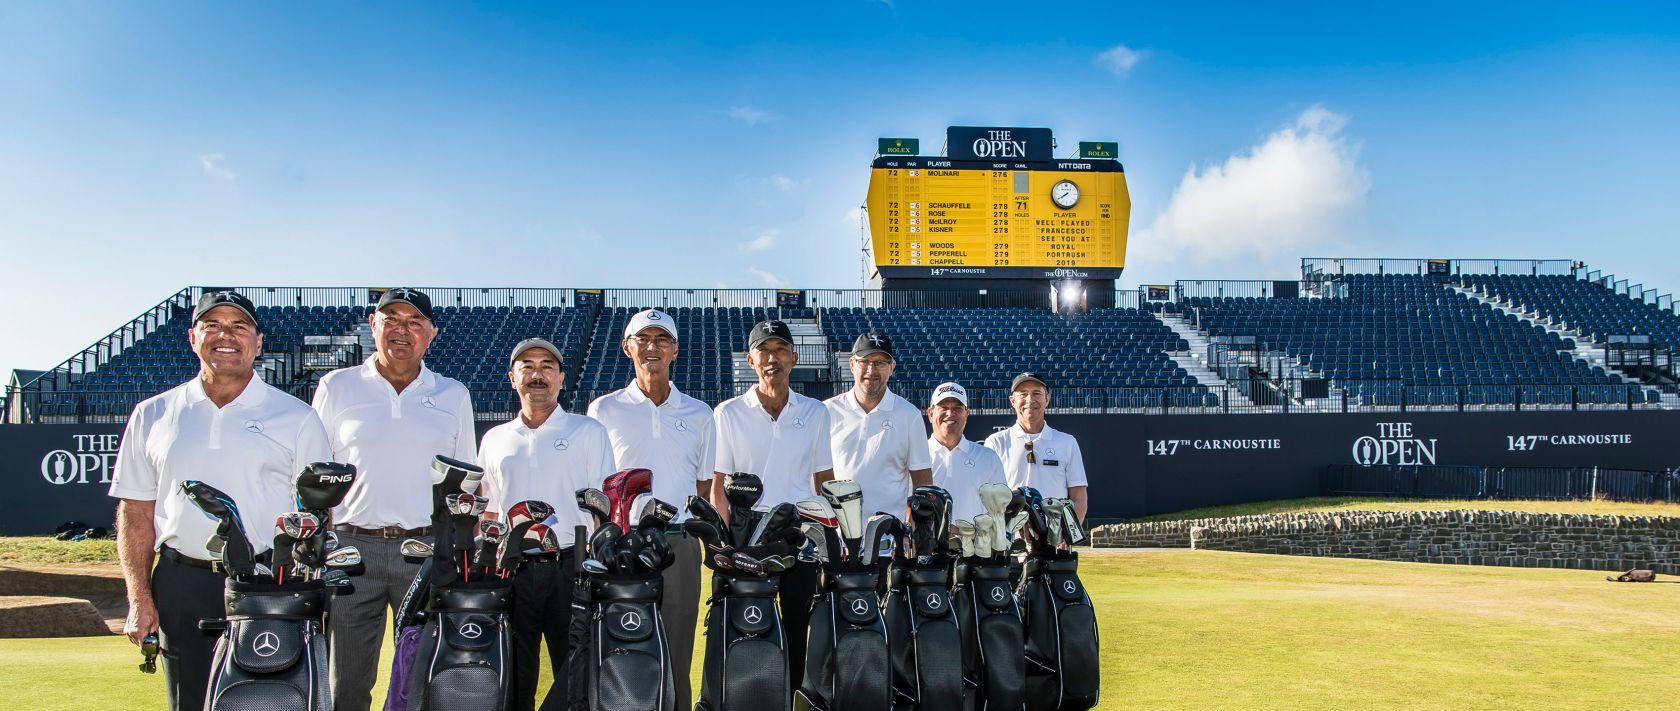 The eight participants of the Monday After Event 2018 stand in front of the iconic The Open leaderboard.